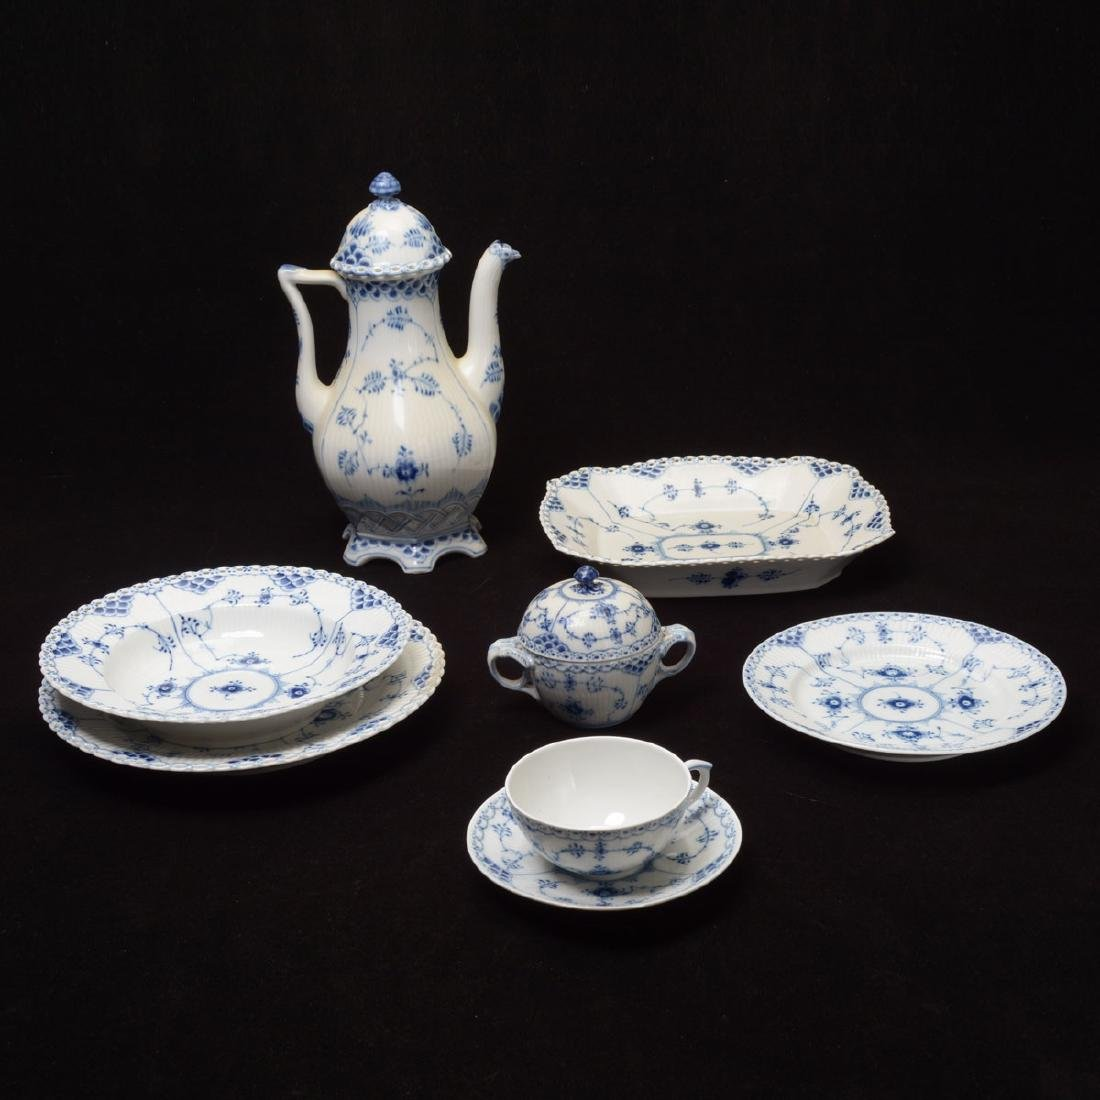 Royal Copenhagen Fluted Blue Lace China Set (31 Pieces)